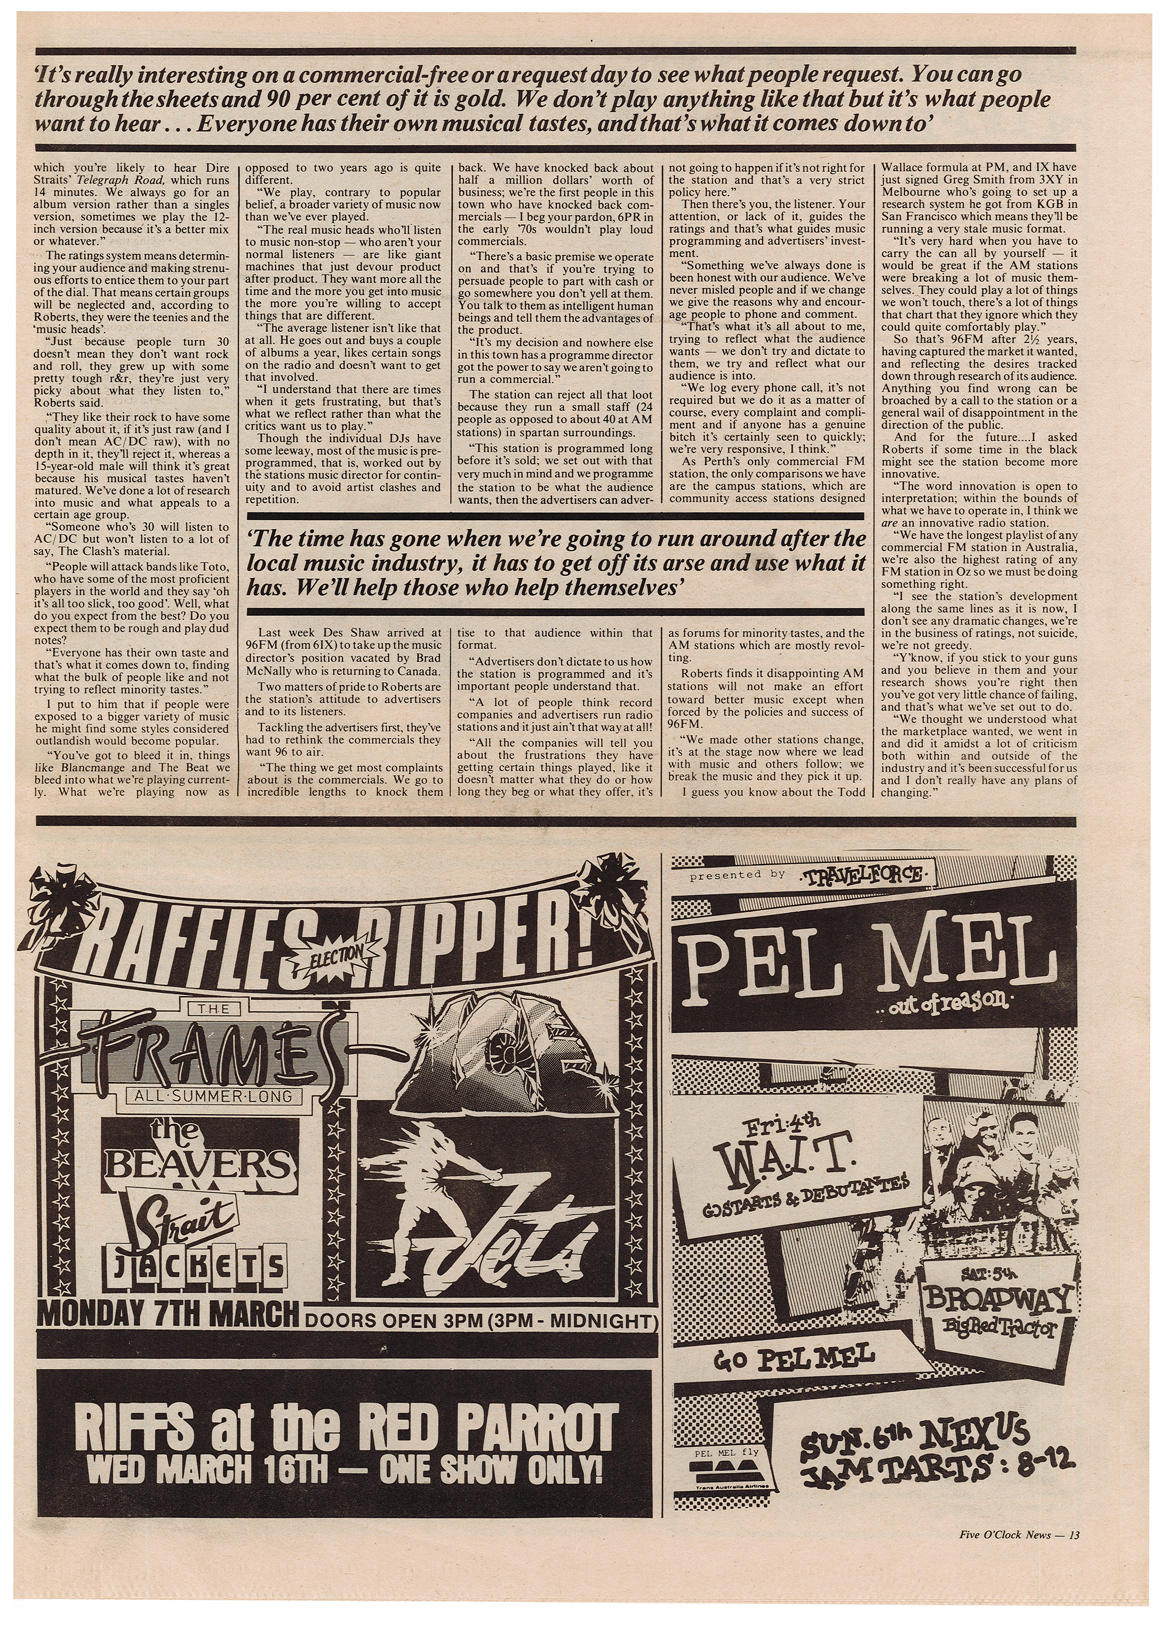 1983.xx.xx - Whats happened to 96FM - Page 13 - UNKNOWN PUB.png